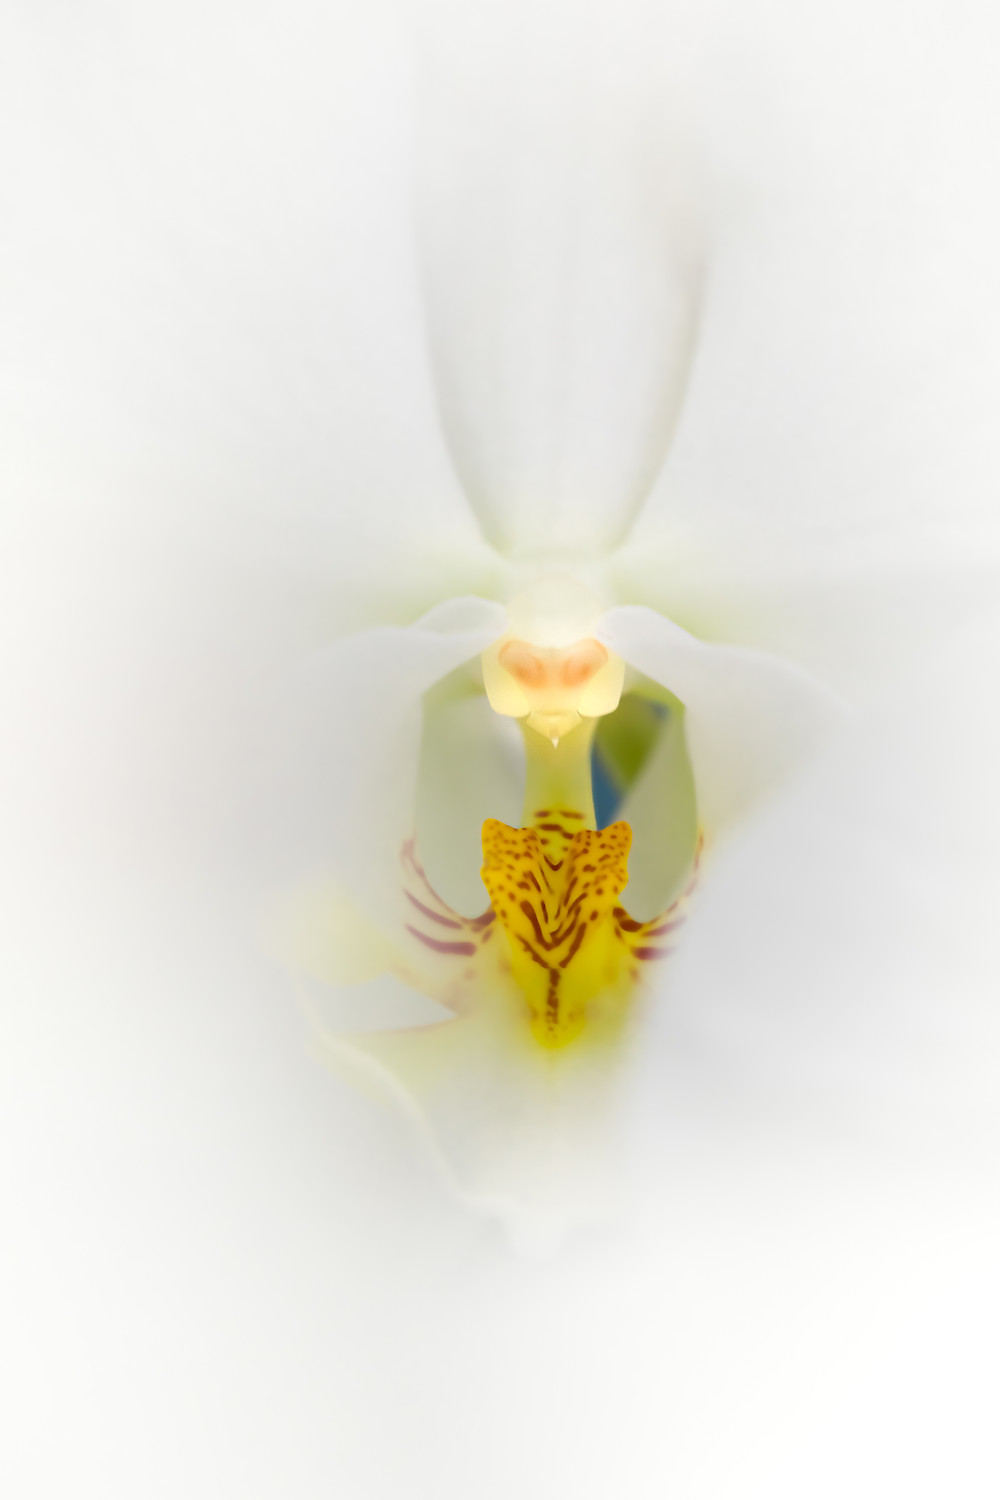 White on White - Selective Focus of Phalaenopsis Orchid